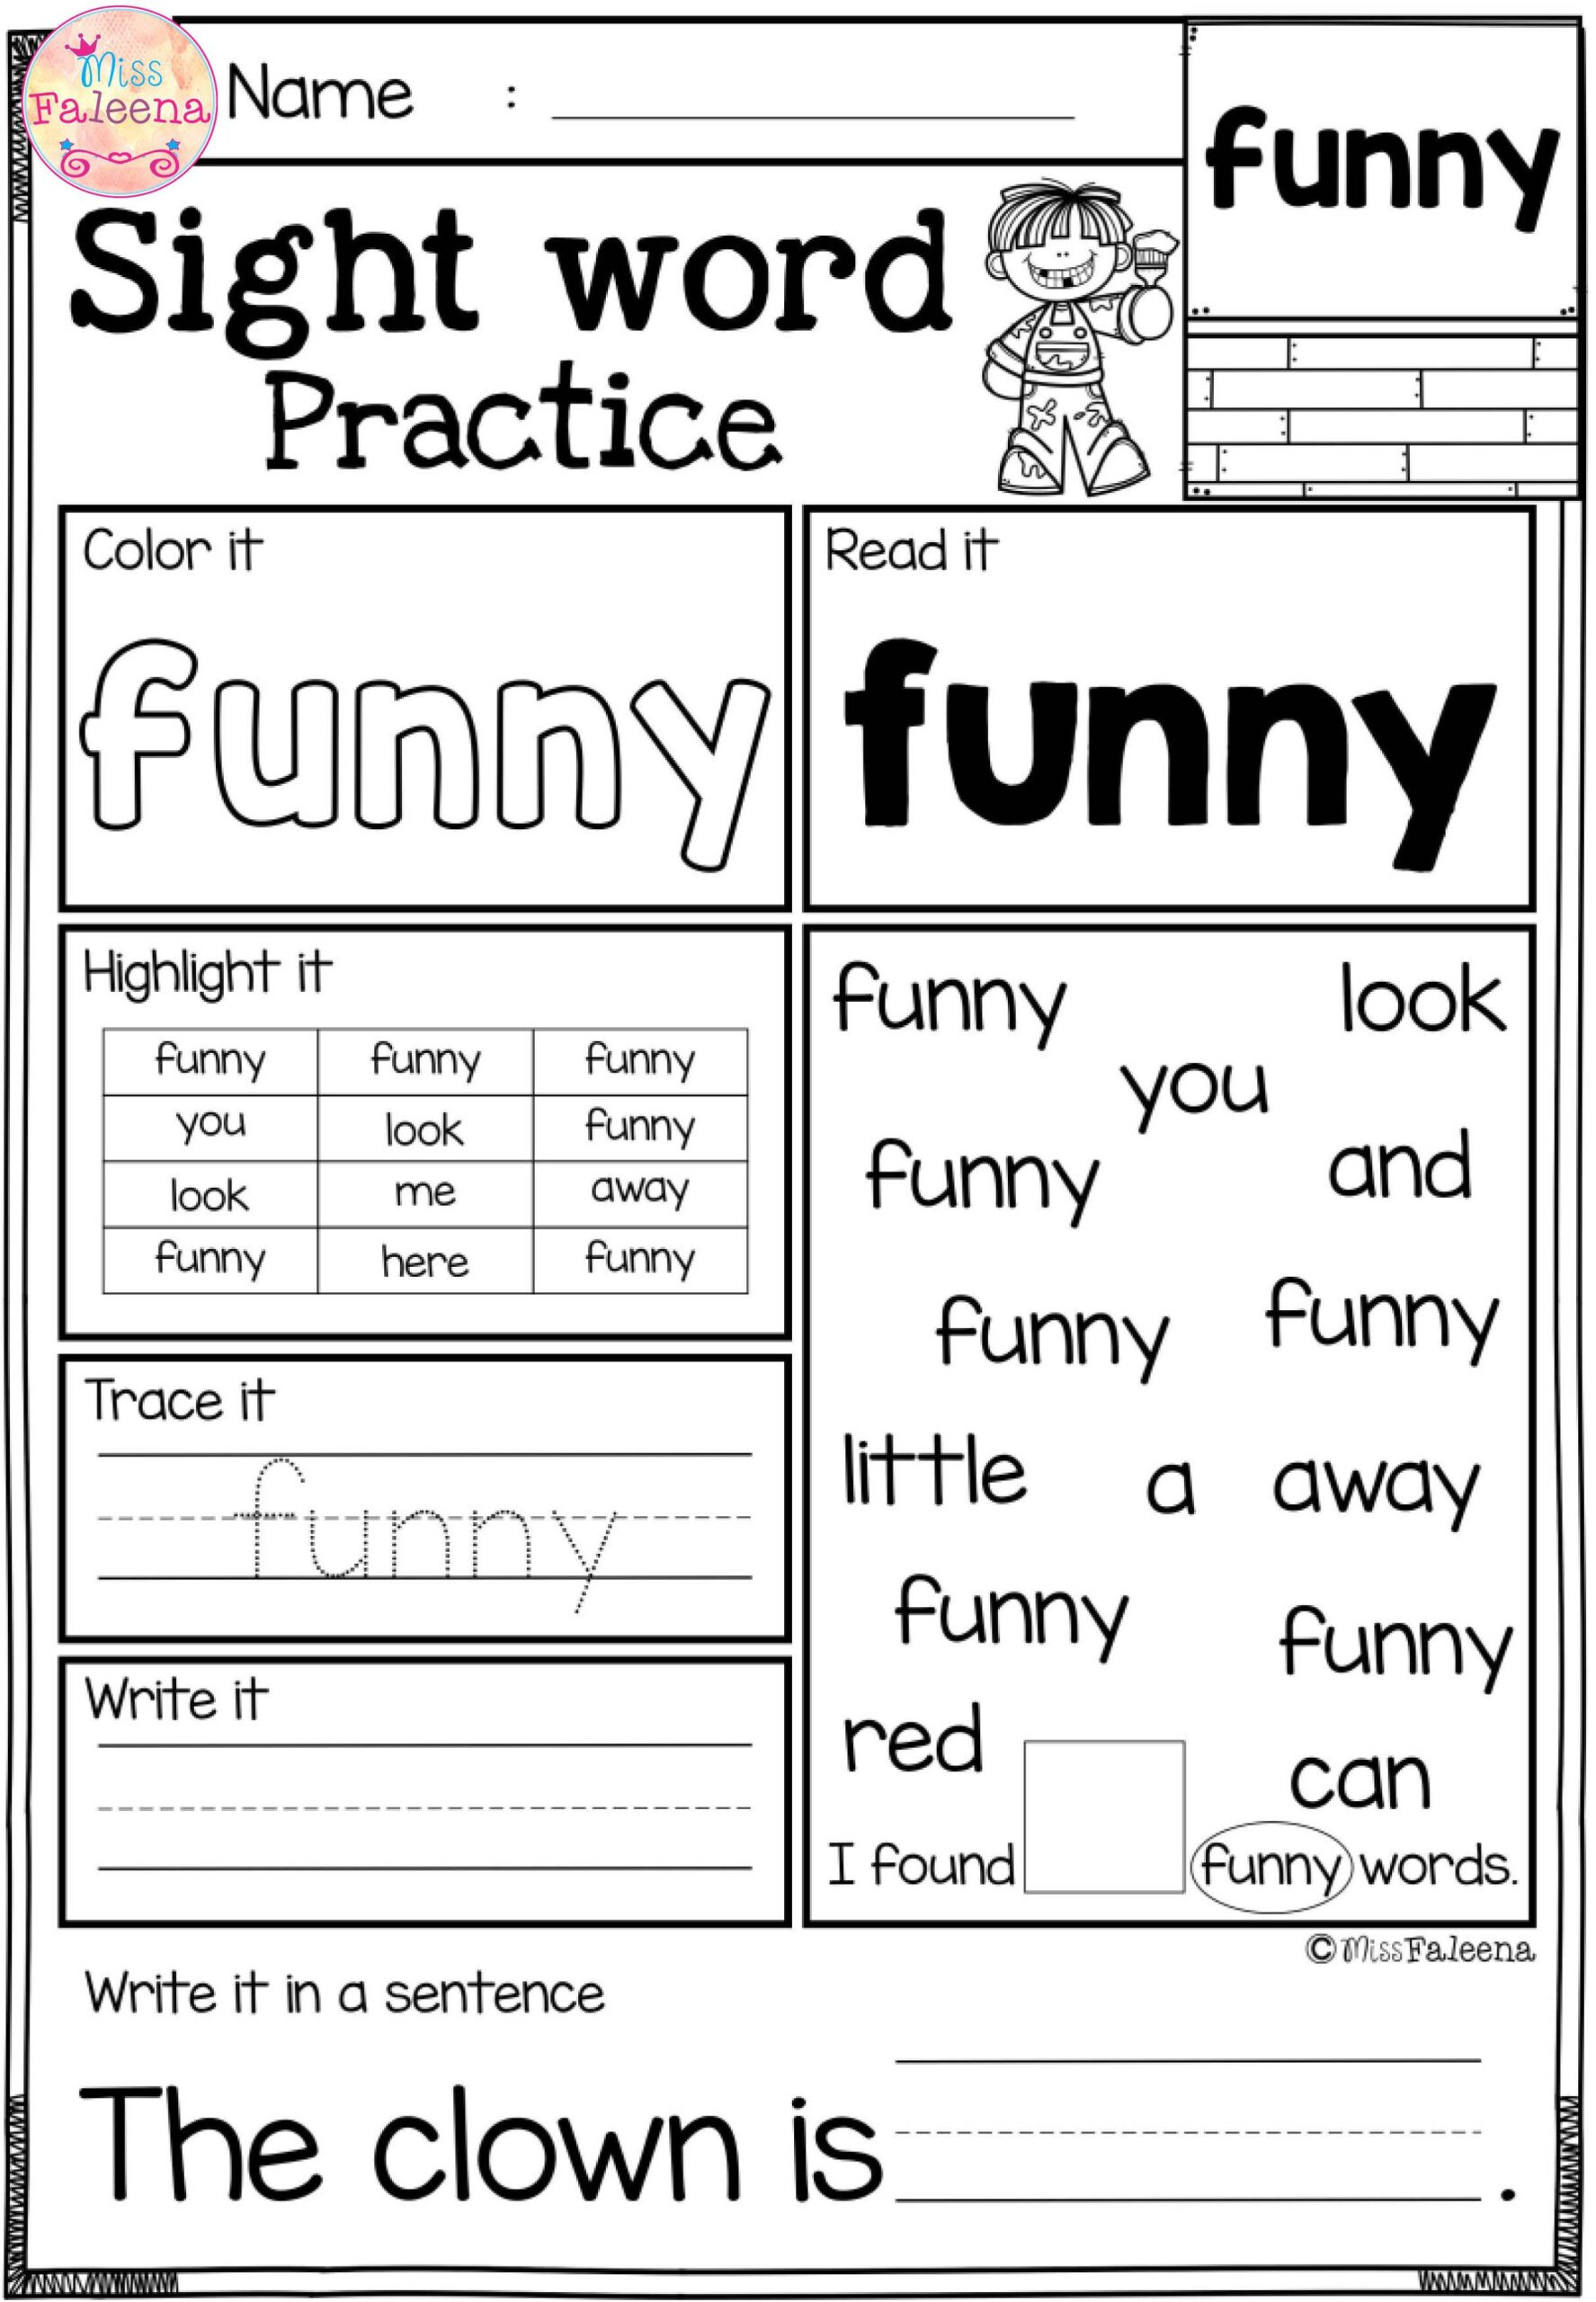 3rd Grade Sight Words Worksheets Free Sight Word Practice Fun Worksheets Grade Math Lessons